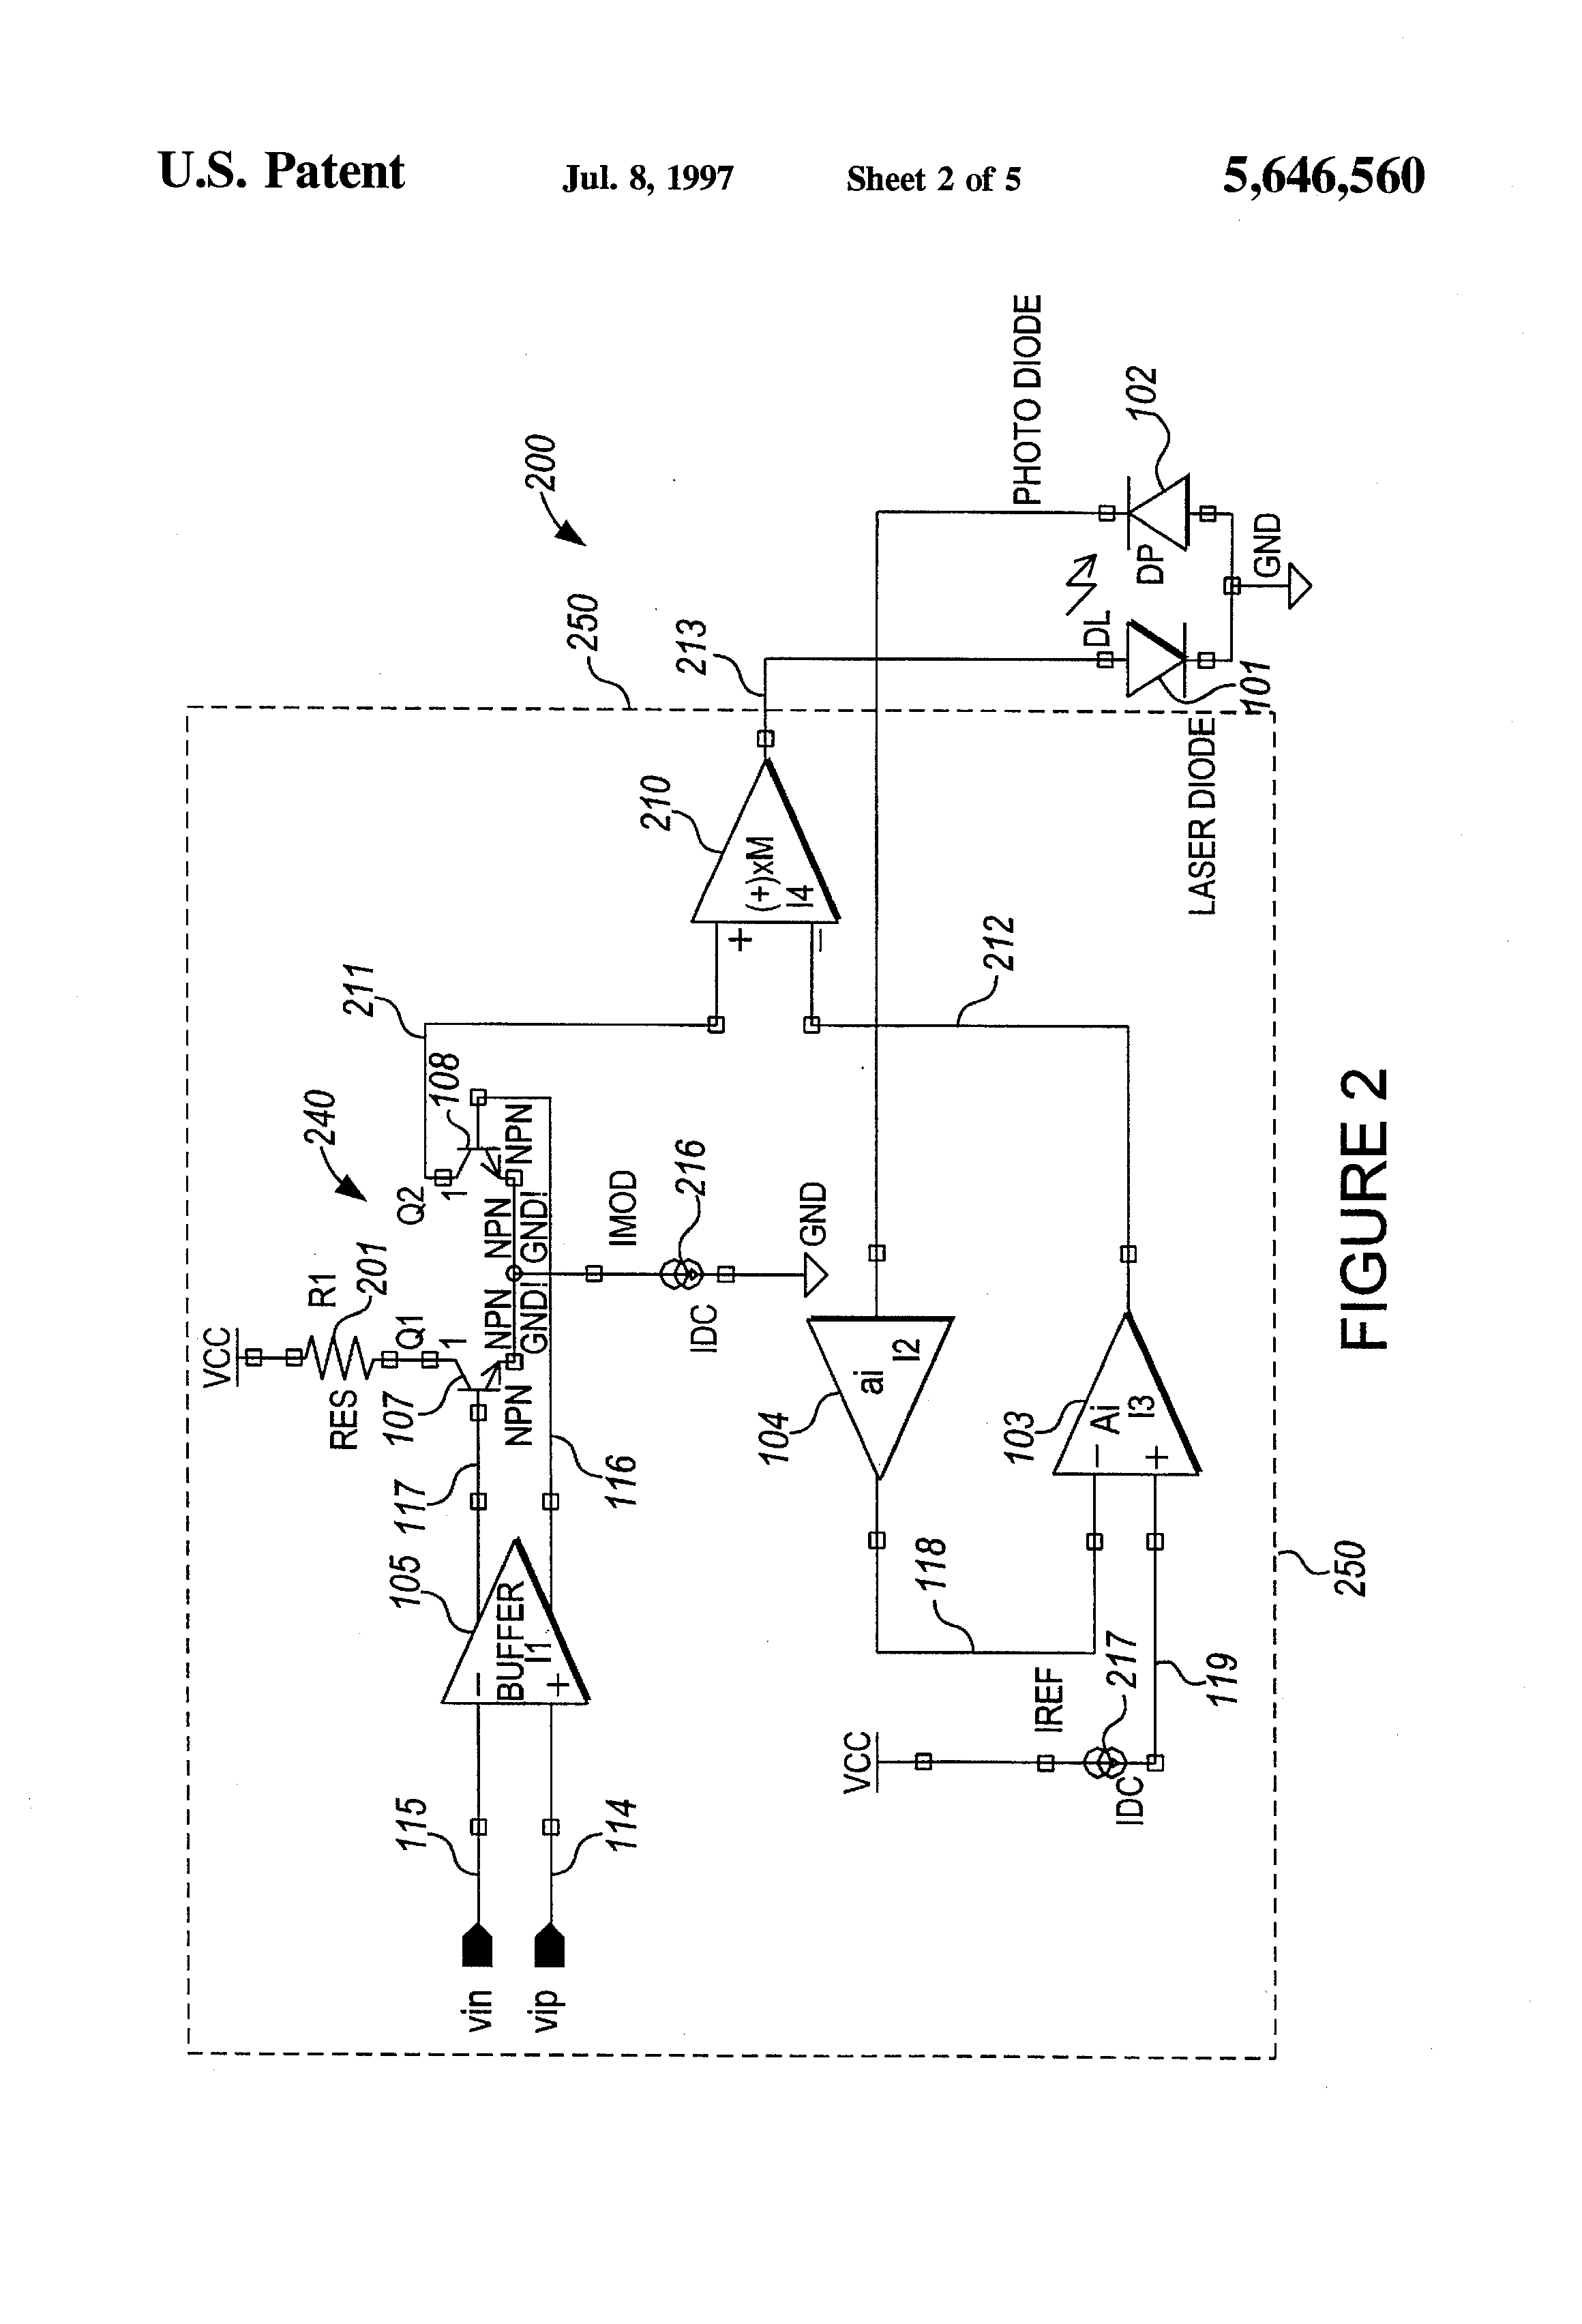 Patent Us5646560 Integrated Low Power Driver For A High Current Laser Diode Diagram Circuit Schematic Drawing